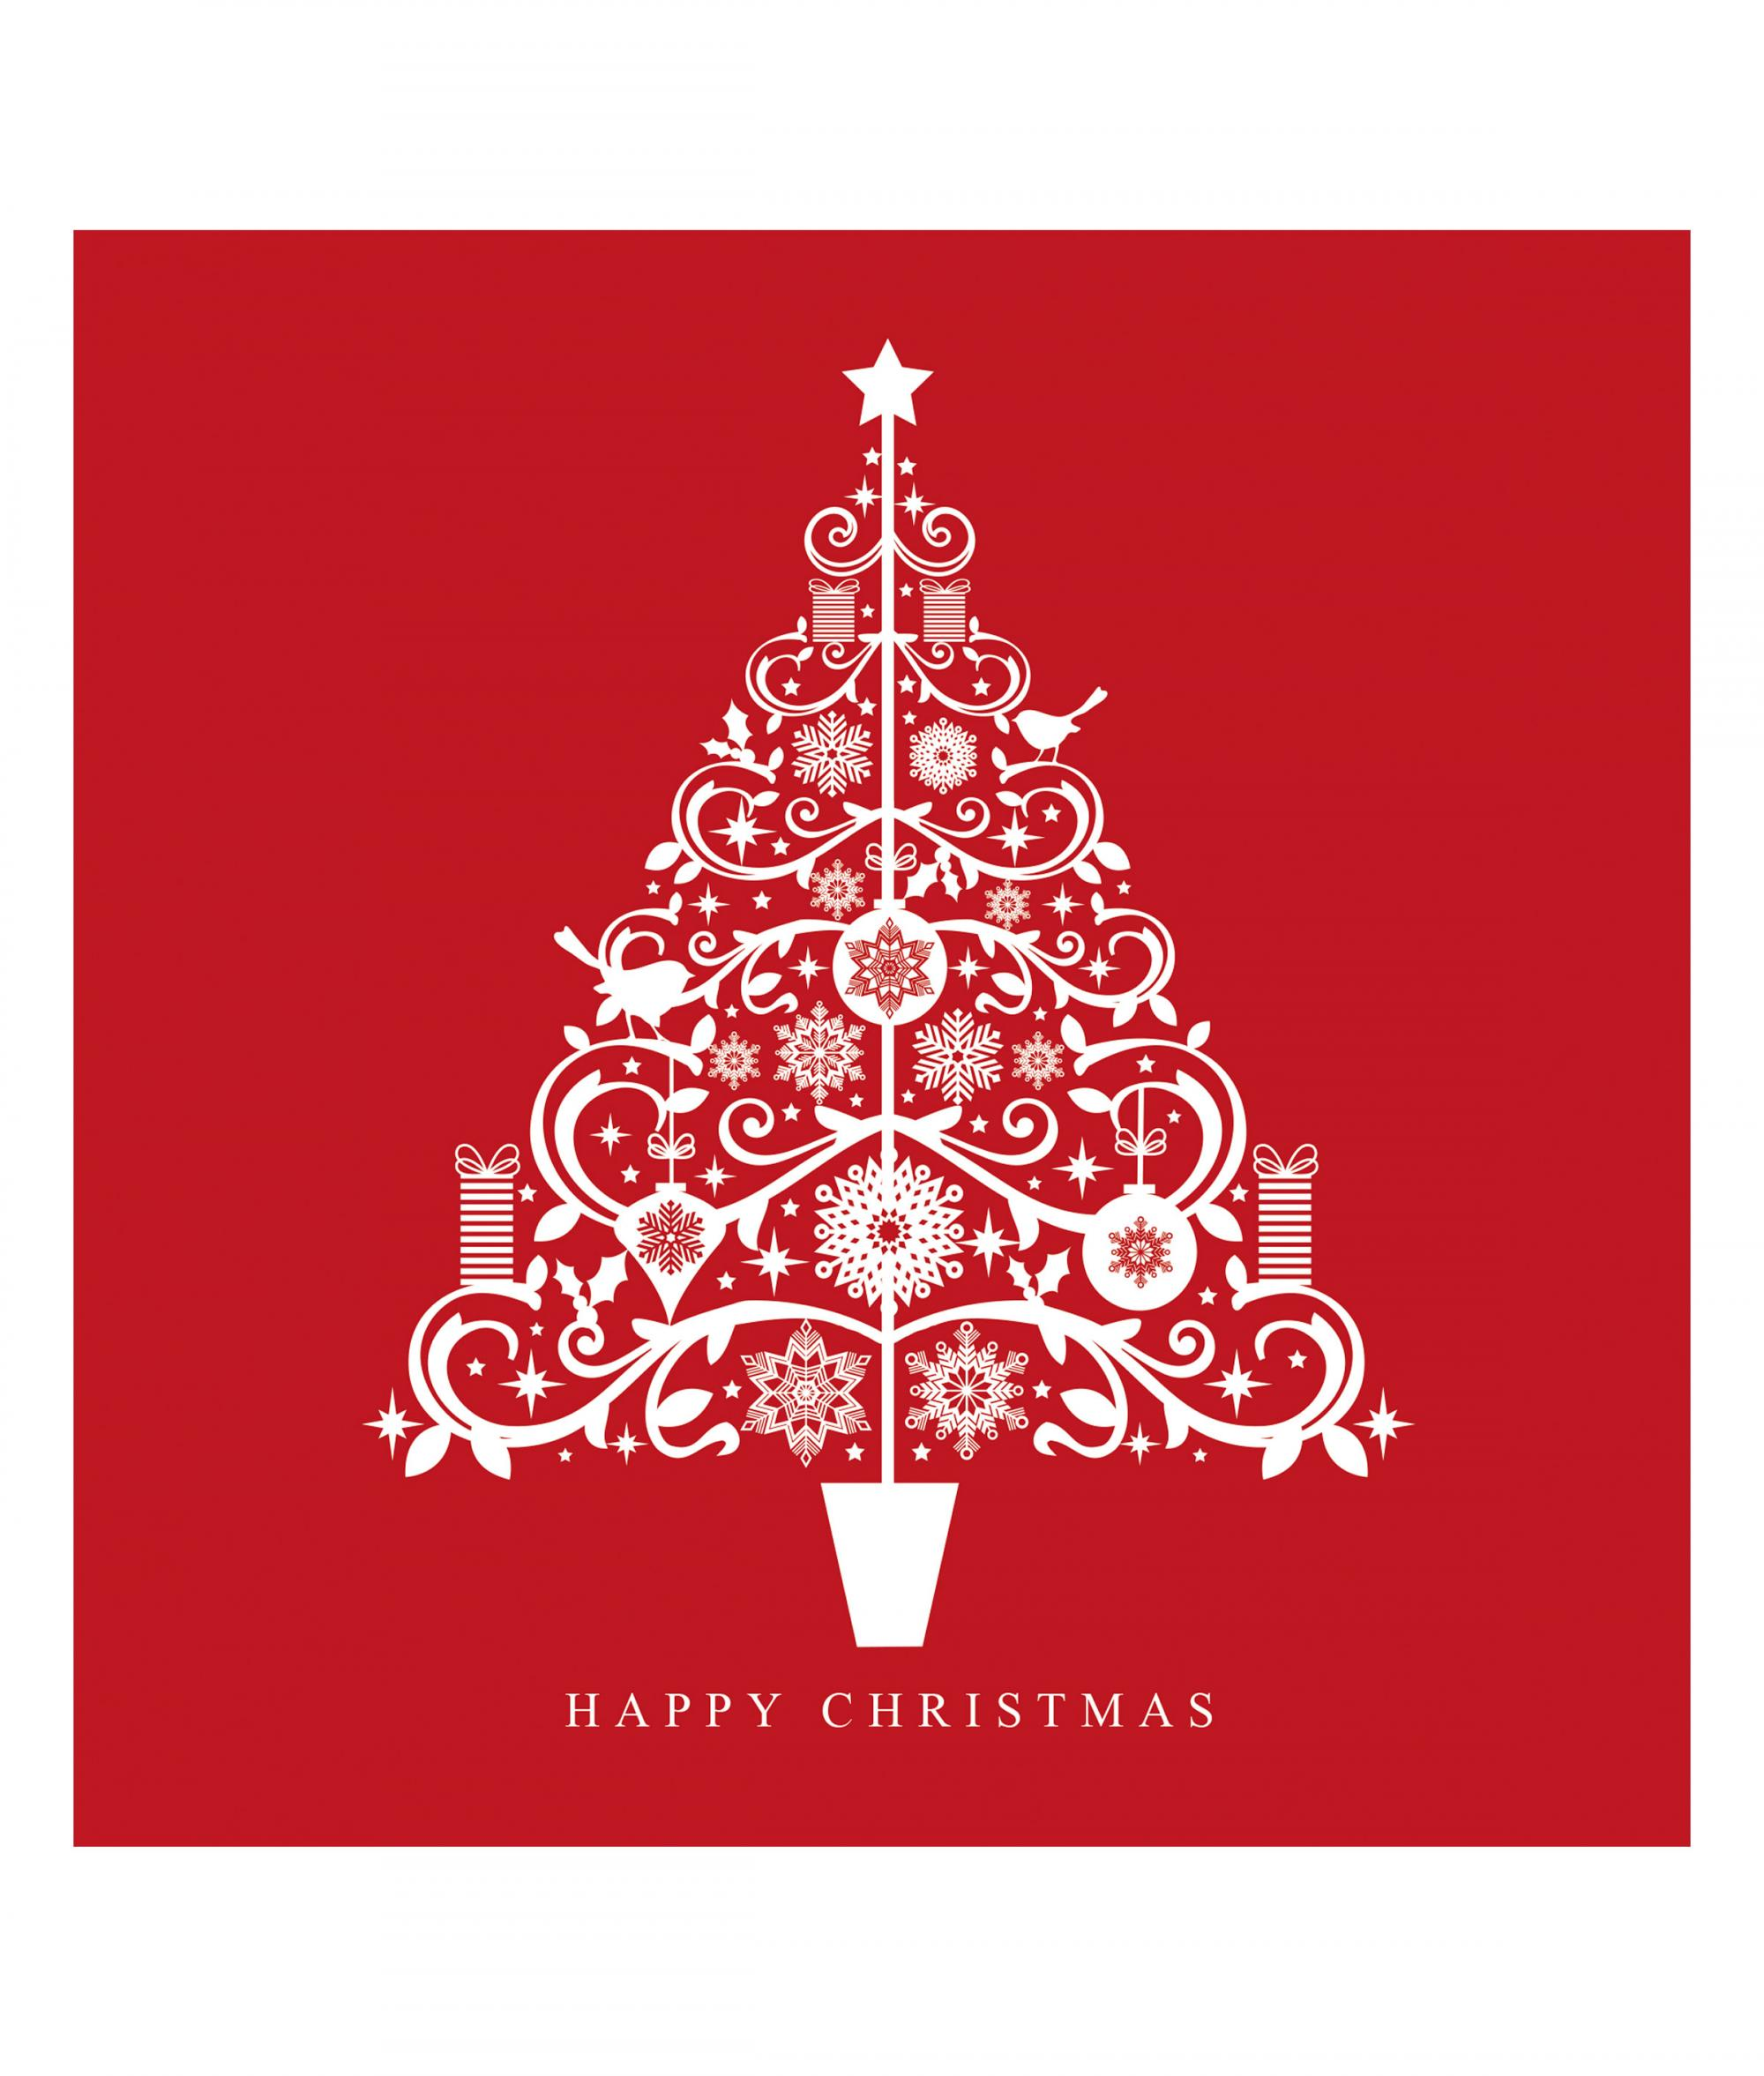 Stunning Tree Christmas Tree - Pack of 10 | Cancer Research UK ...